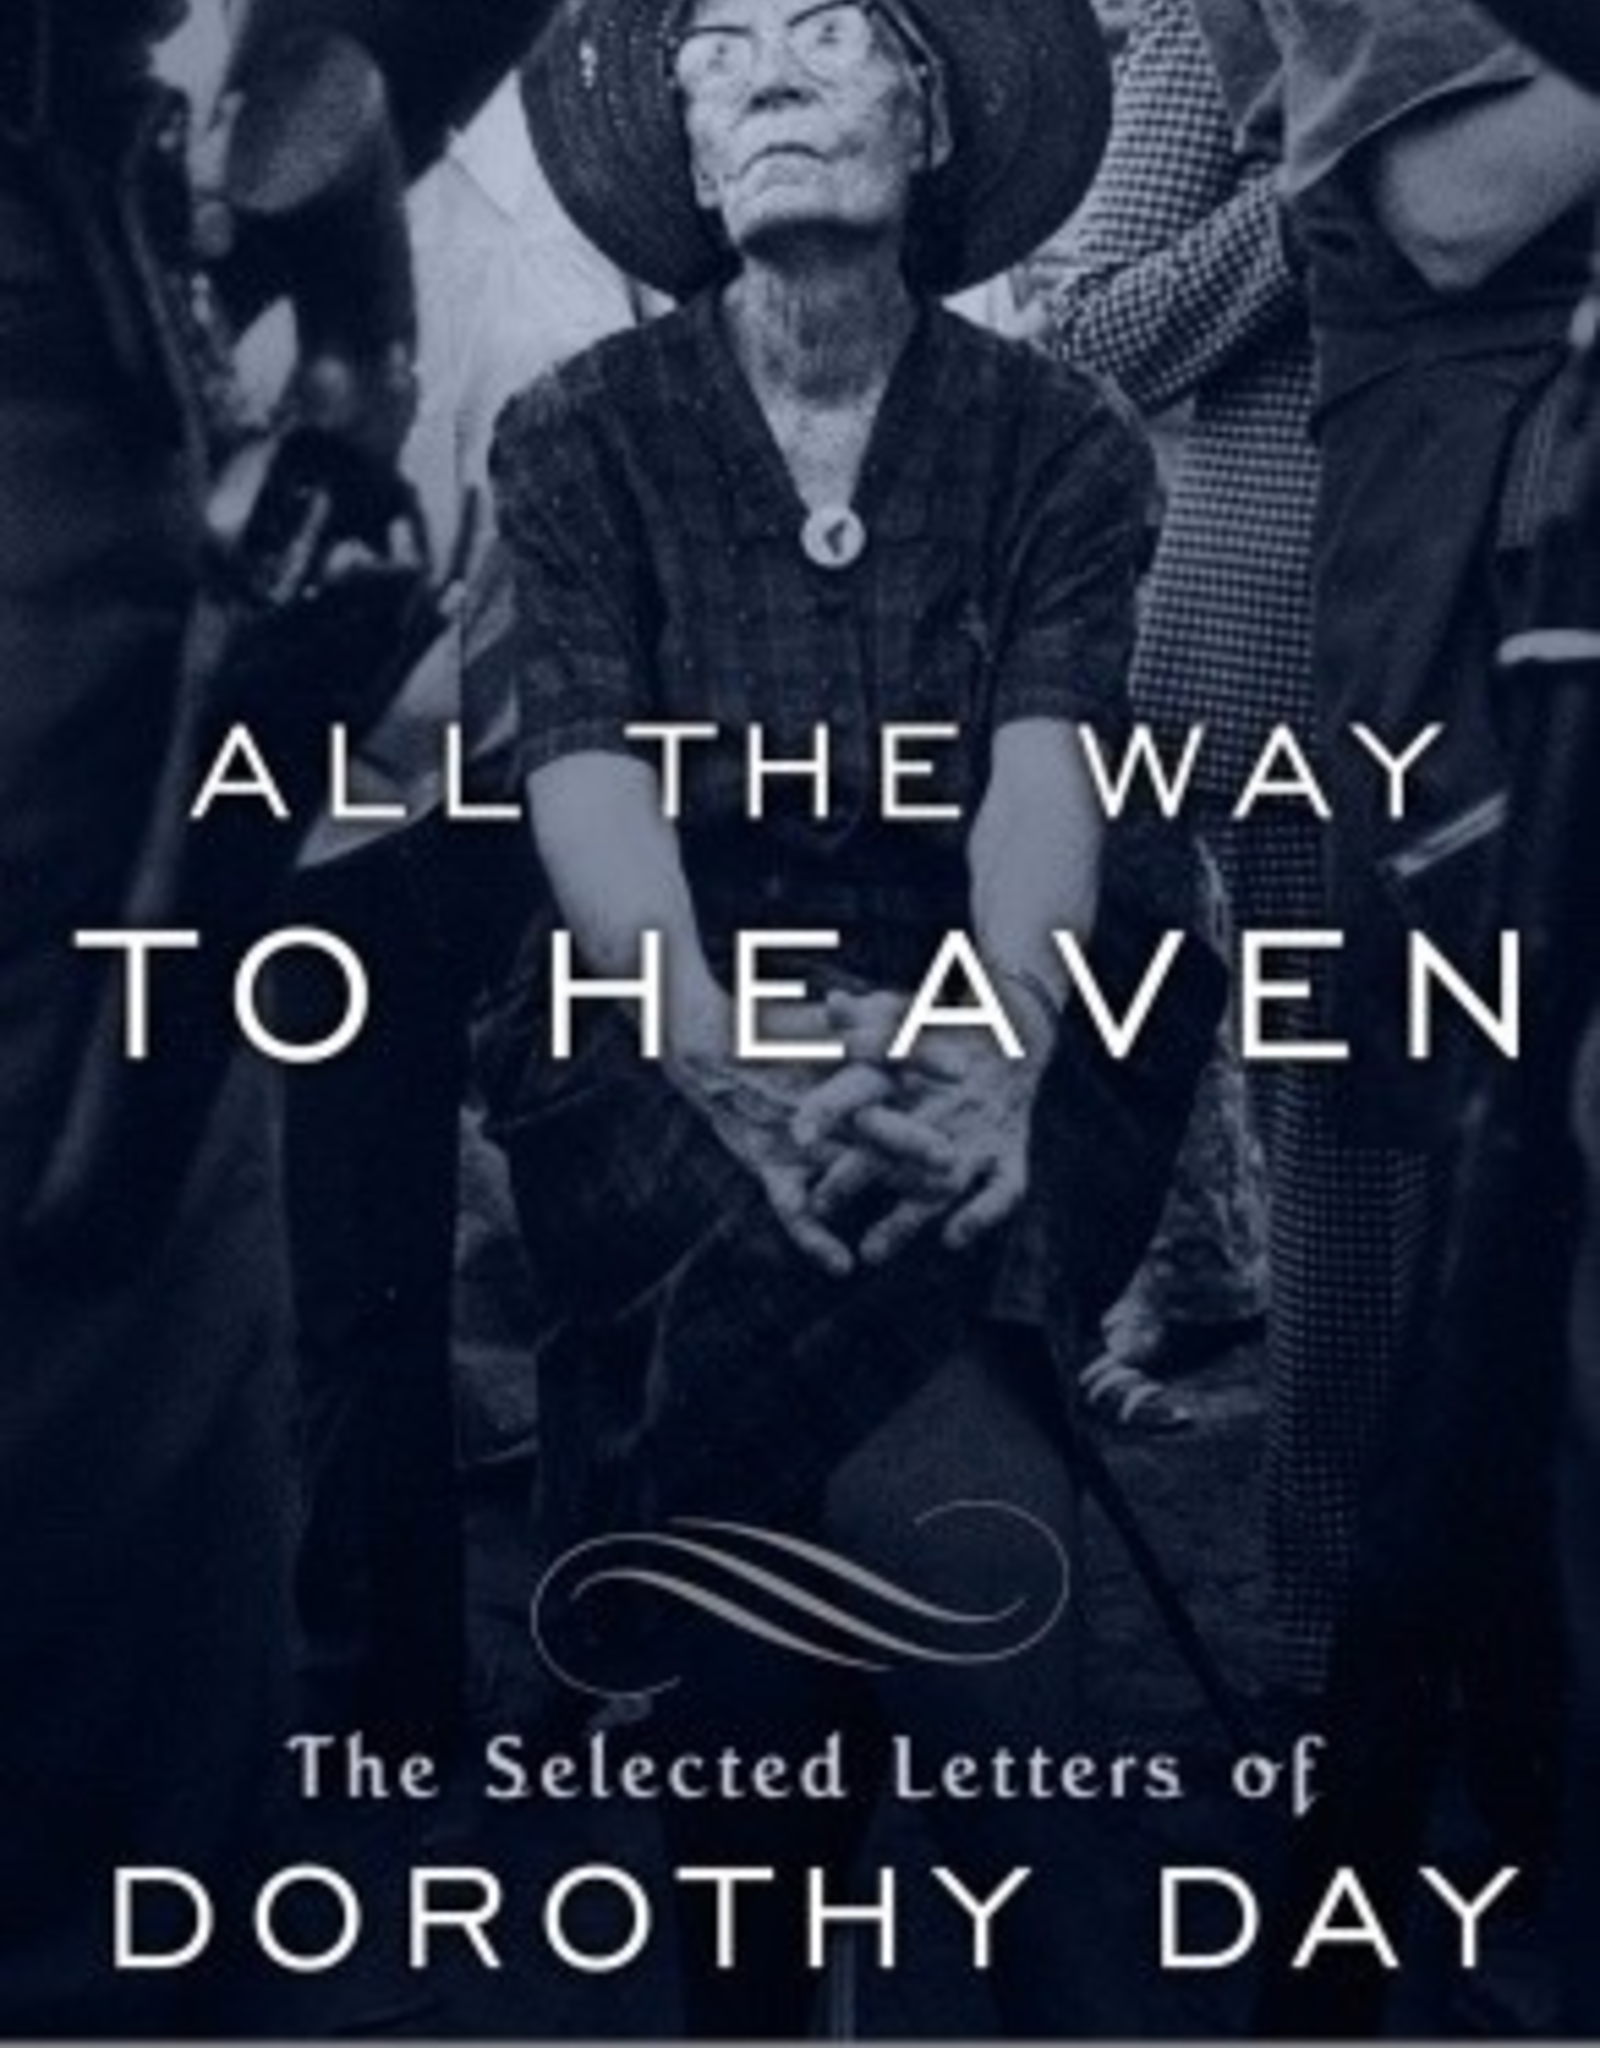 Random House All the Way to Heaven:  The Selected Letters of Dorothy Day, edited by Robert Ellsberg (paperback)